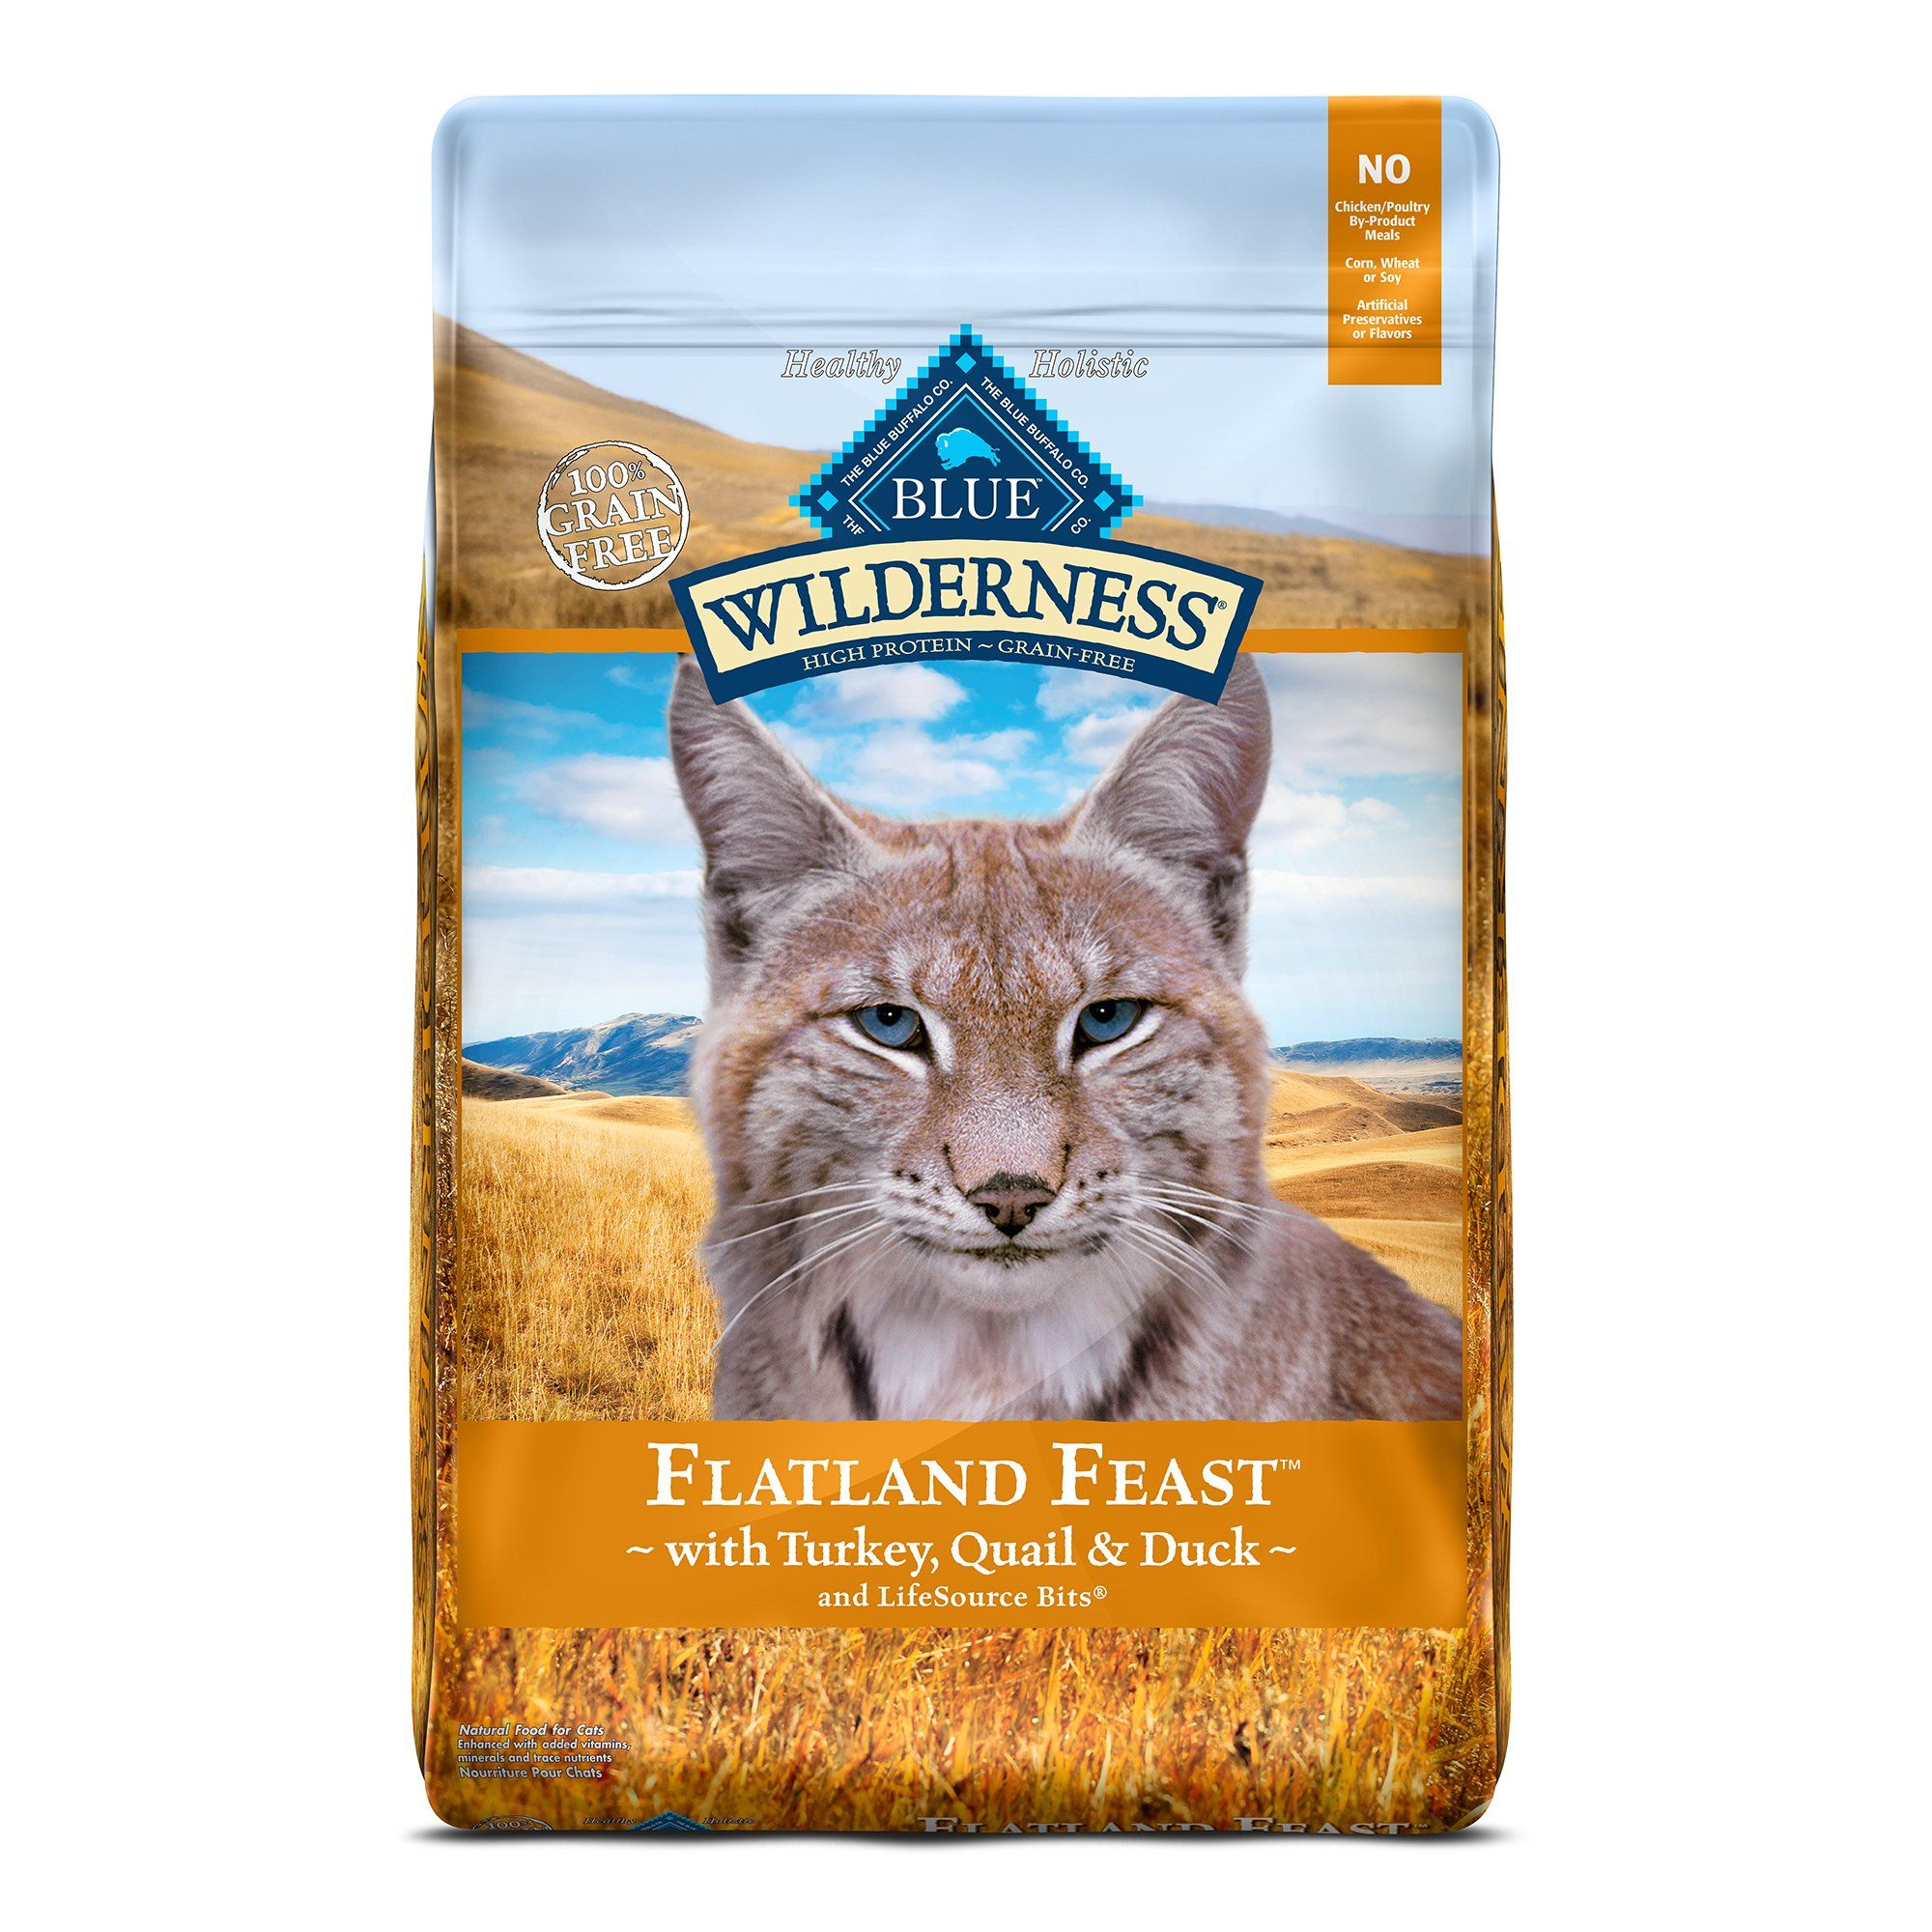 Blue Buffalo Blue Wilderness Regionals Flatland Feast Dry Cat Food 10 Lbs Petco In 2020 Dry Cat Food Cat Food Blue Buffalo